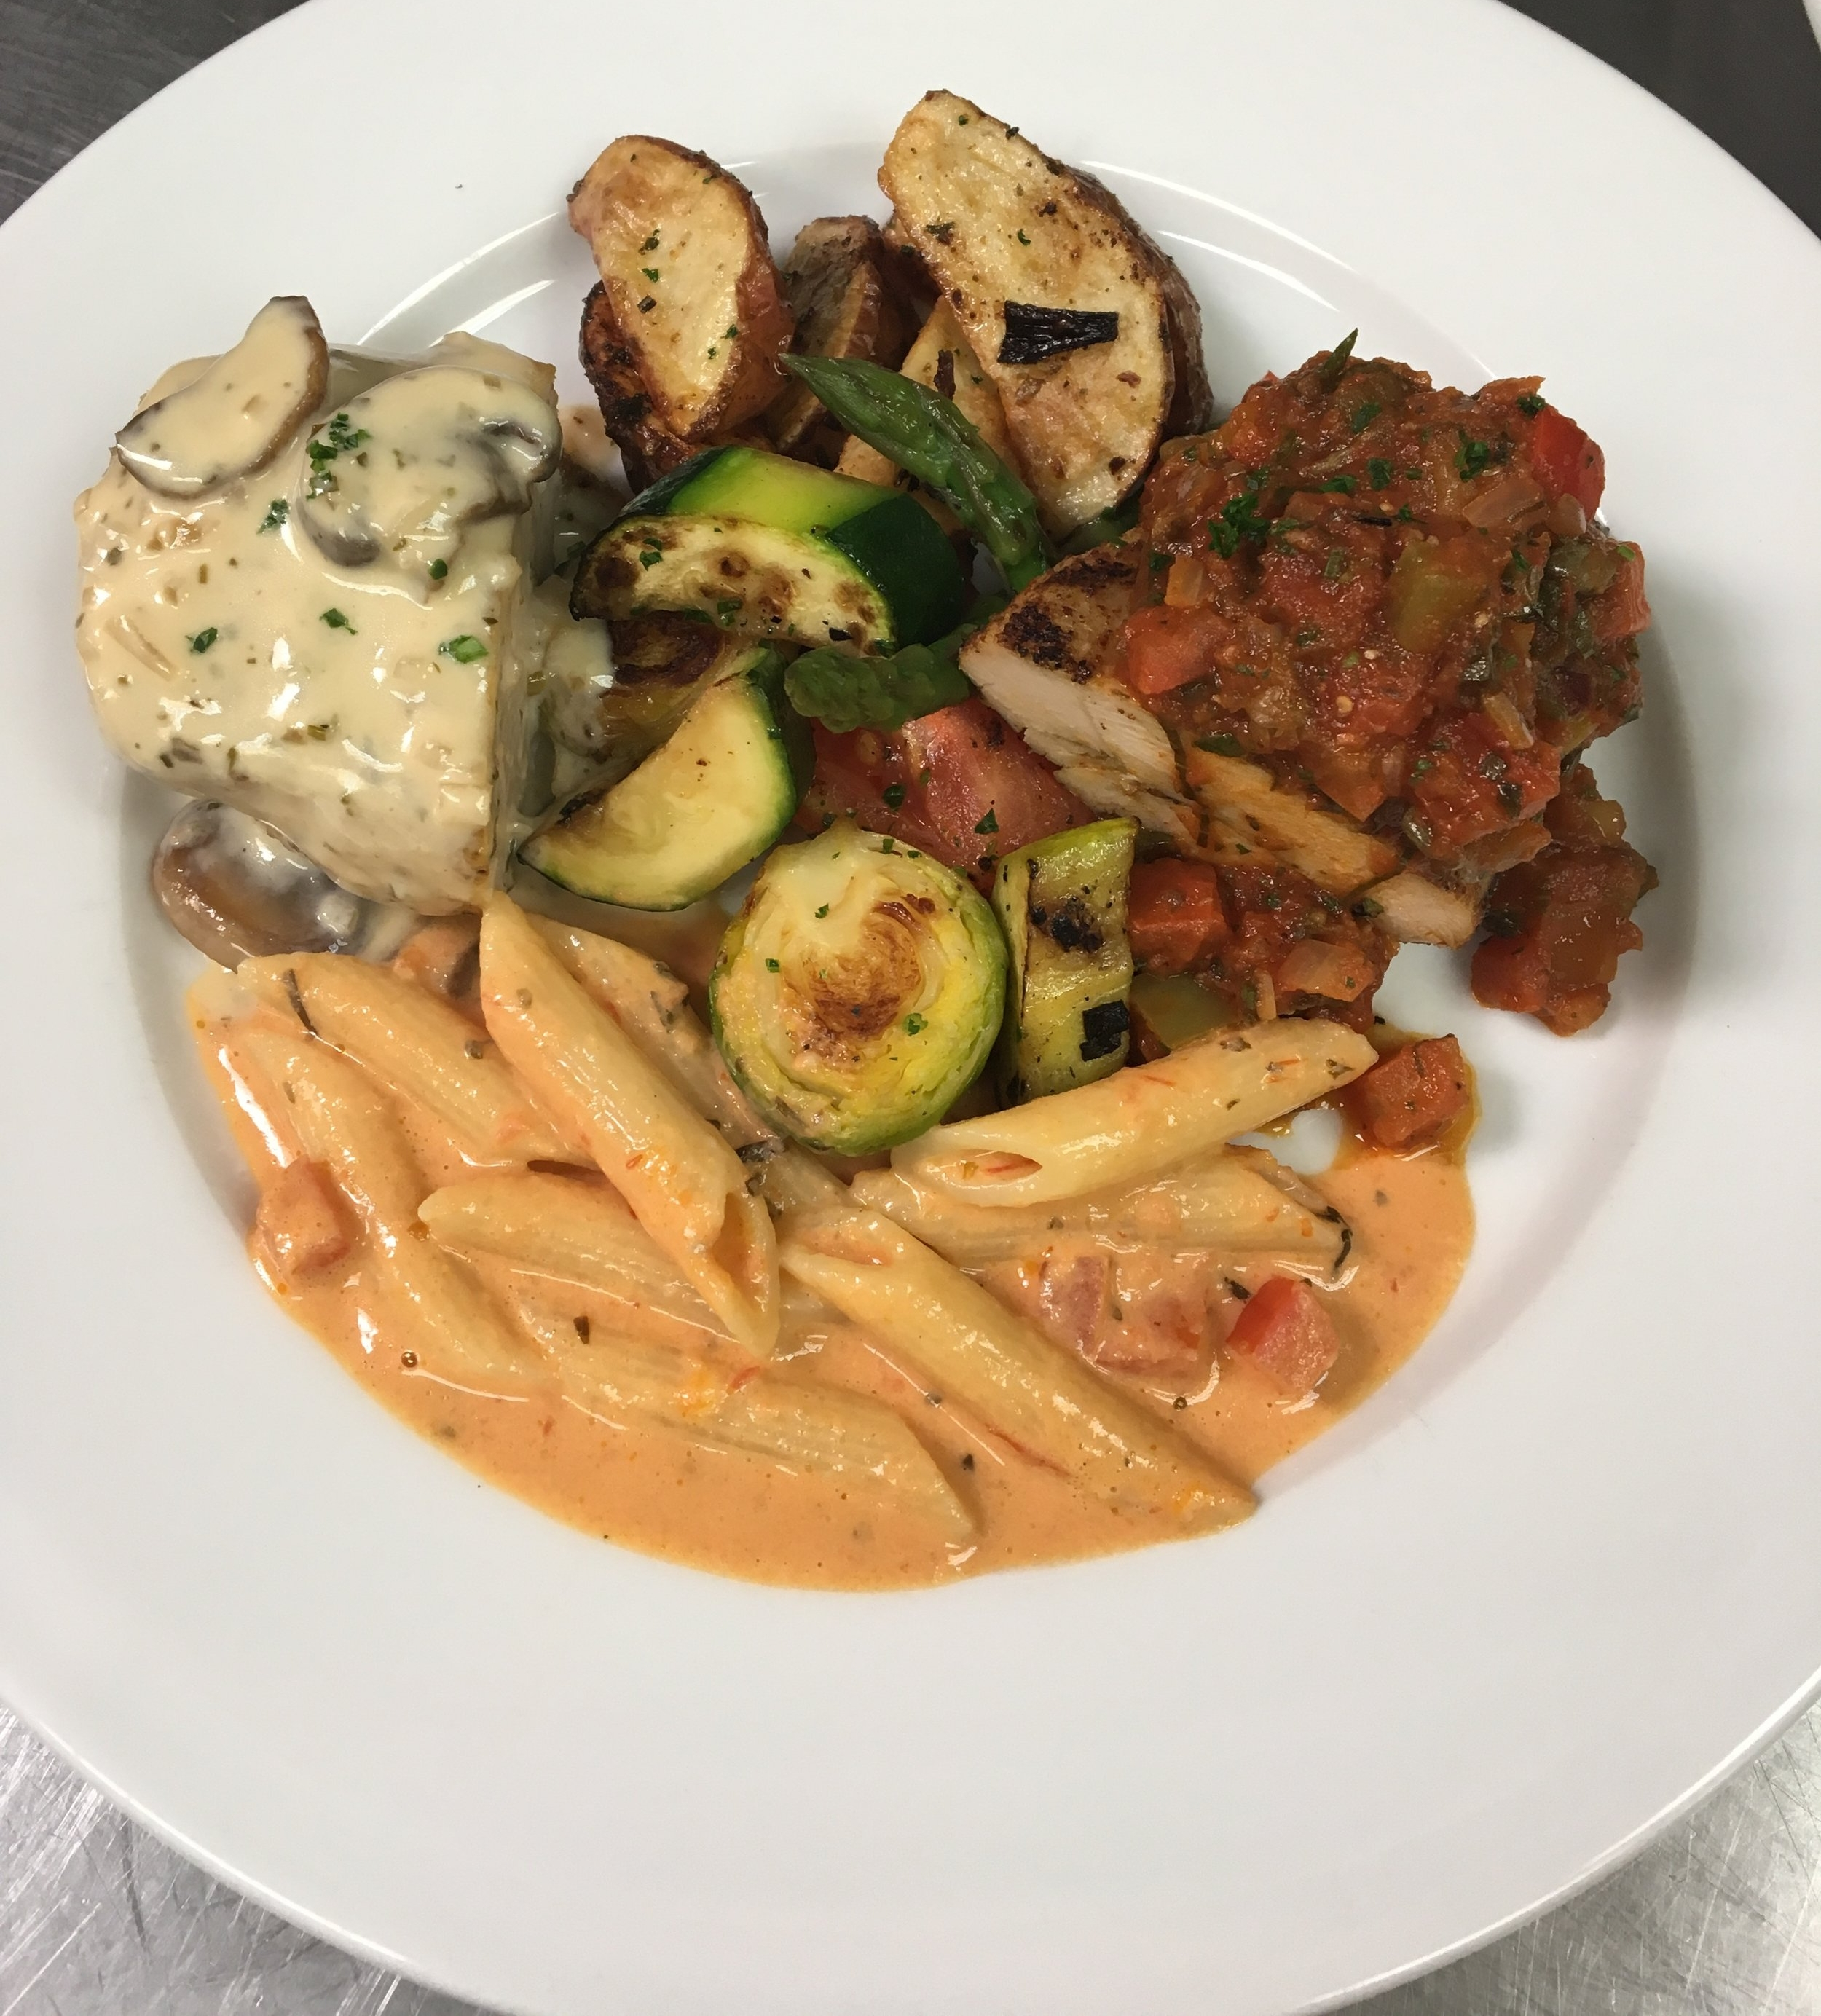 Chicken Marsala, Fire Roasted Chicken Breast, Roasted Red Bud Potatoes, Grilled Vegetables, and Penne Mozzarella Pasta